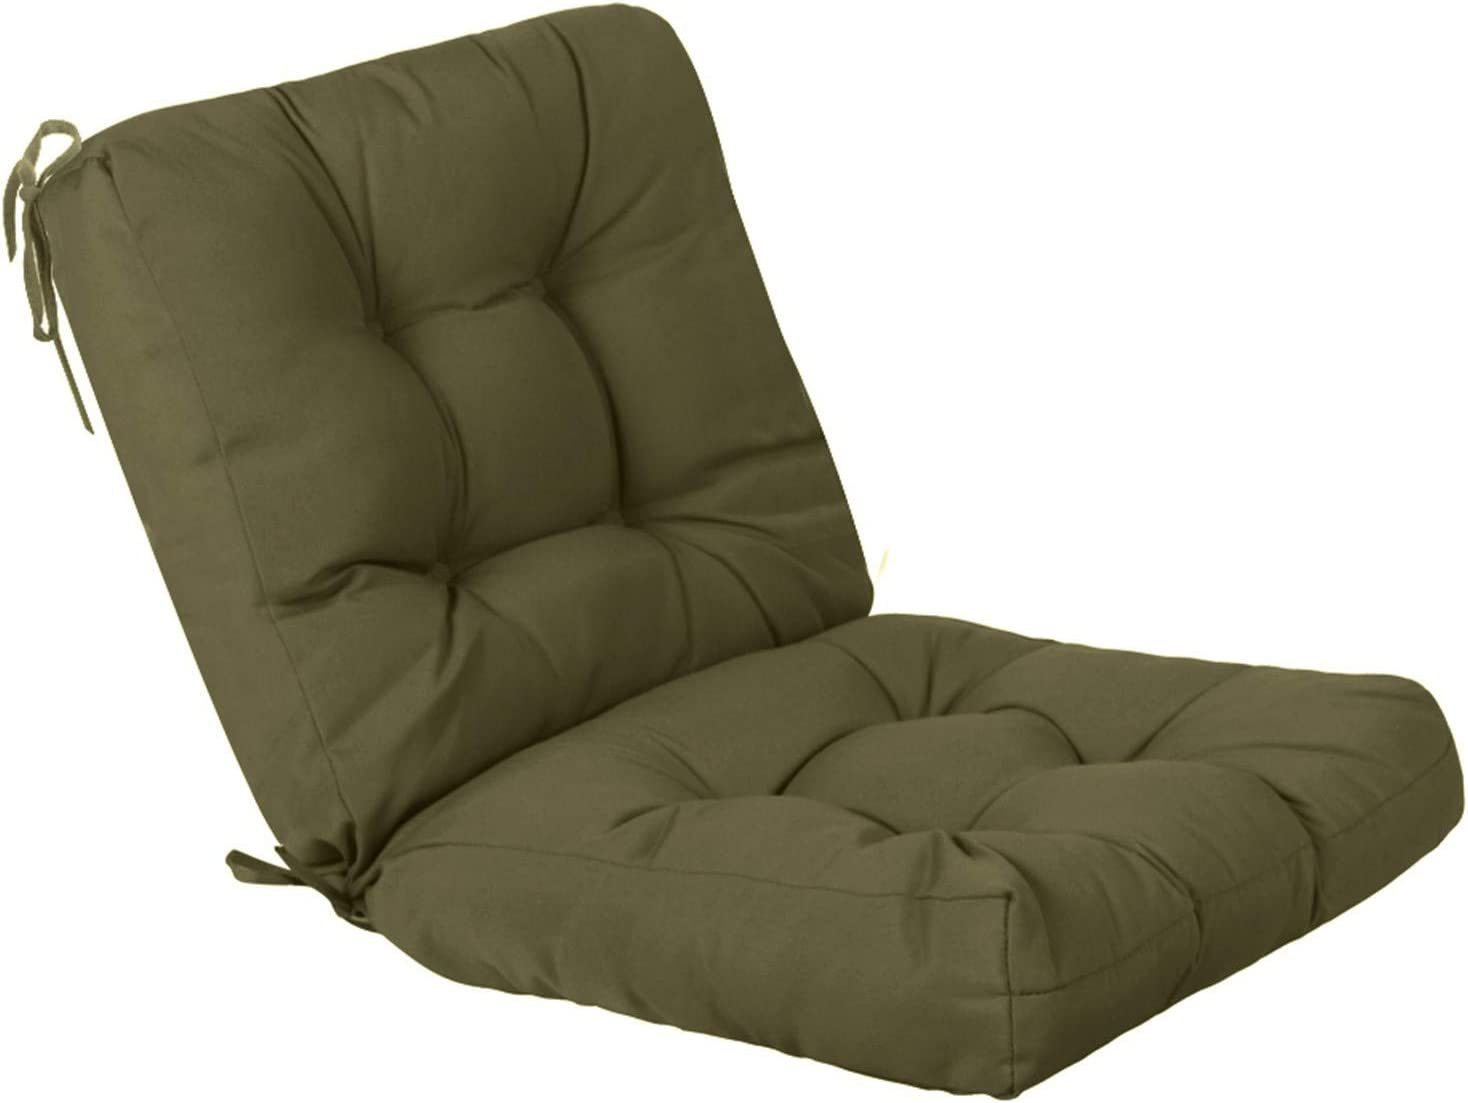 QILLOWAY Outdoor Seat/Back Chair Cushion Tufted Pillow , Spring/Summer Seasonal All Weather Replacement Cushions. (SAGE)